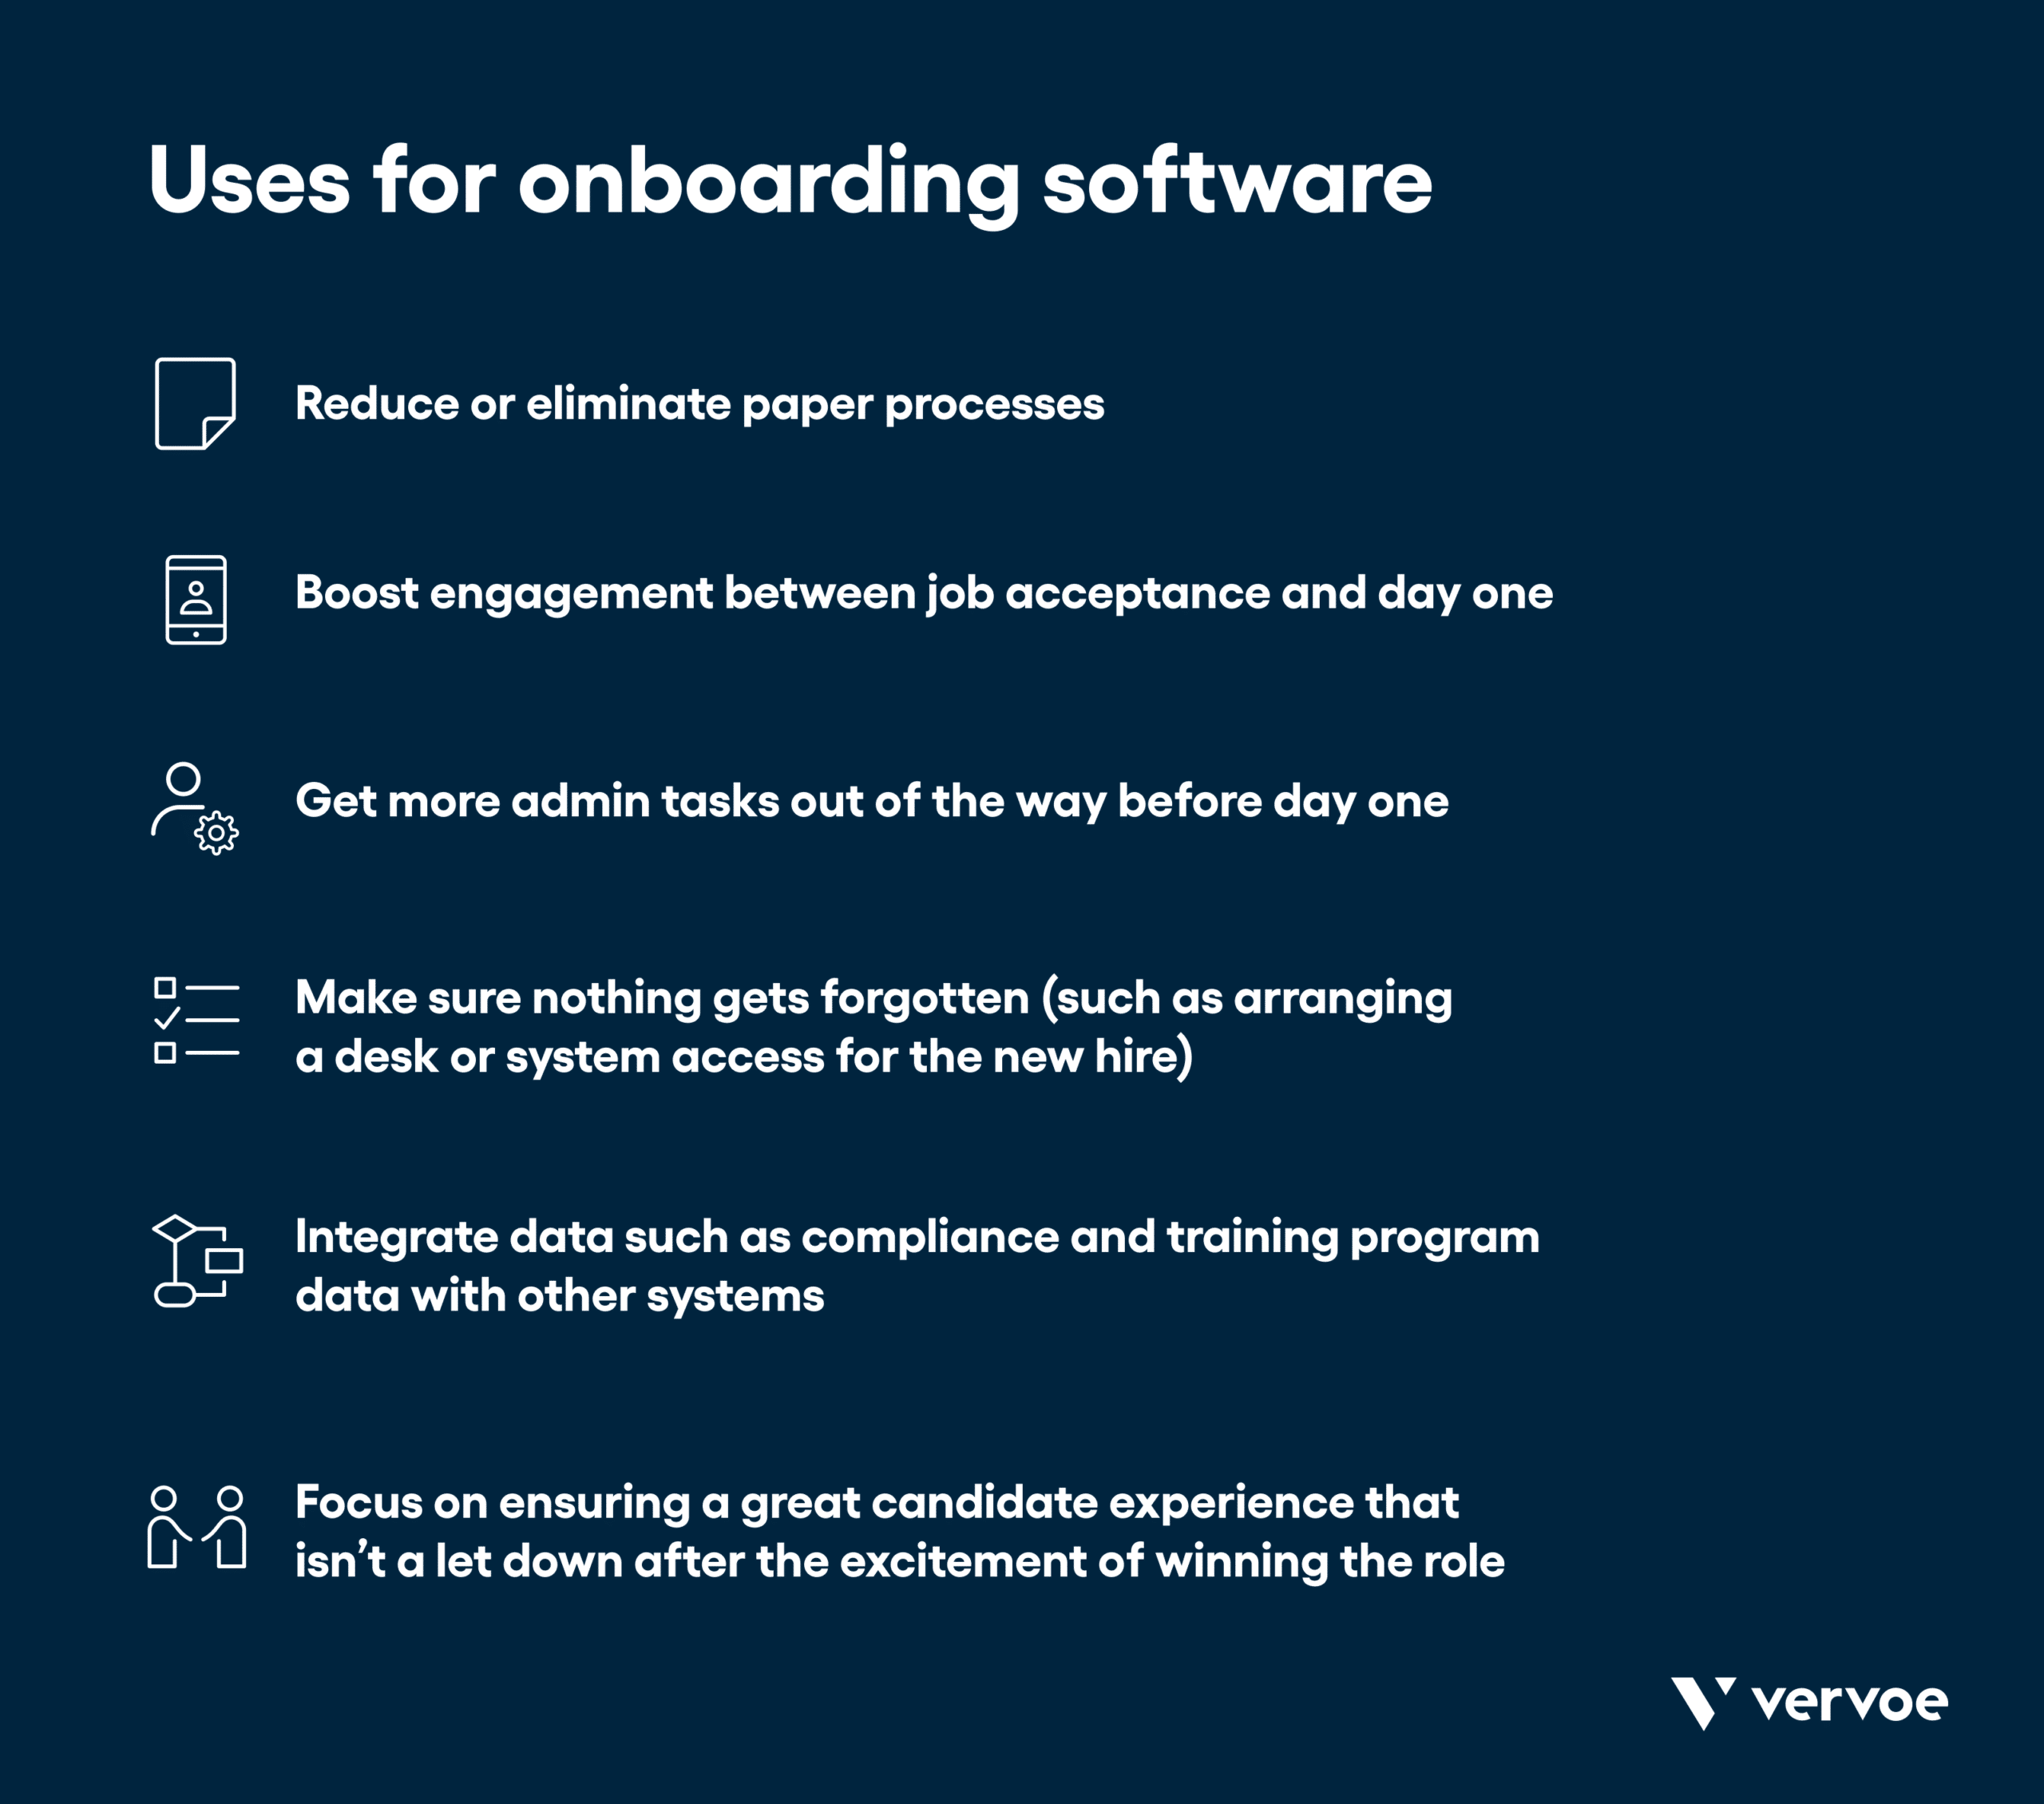 Infographic showing what onboarding software can be used for